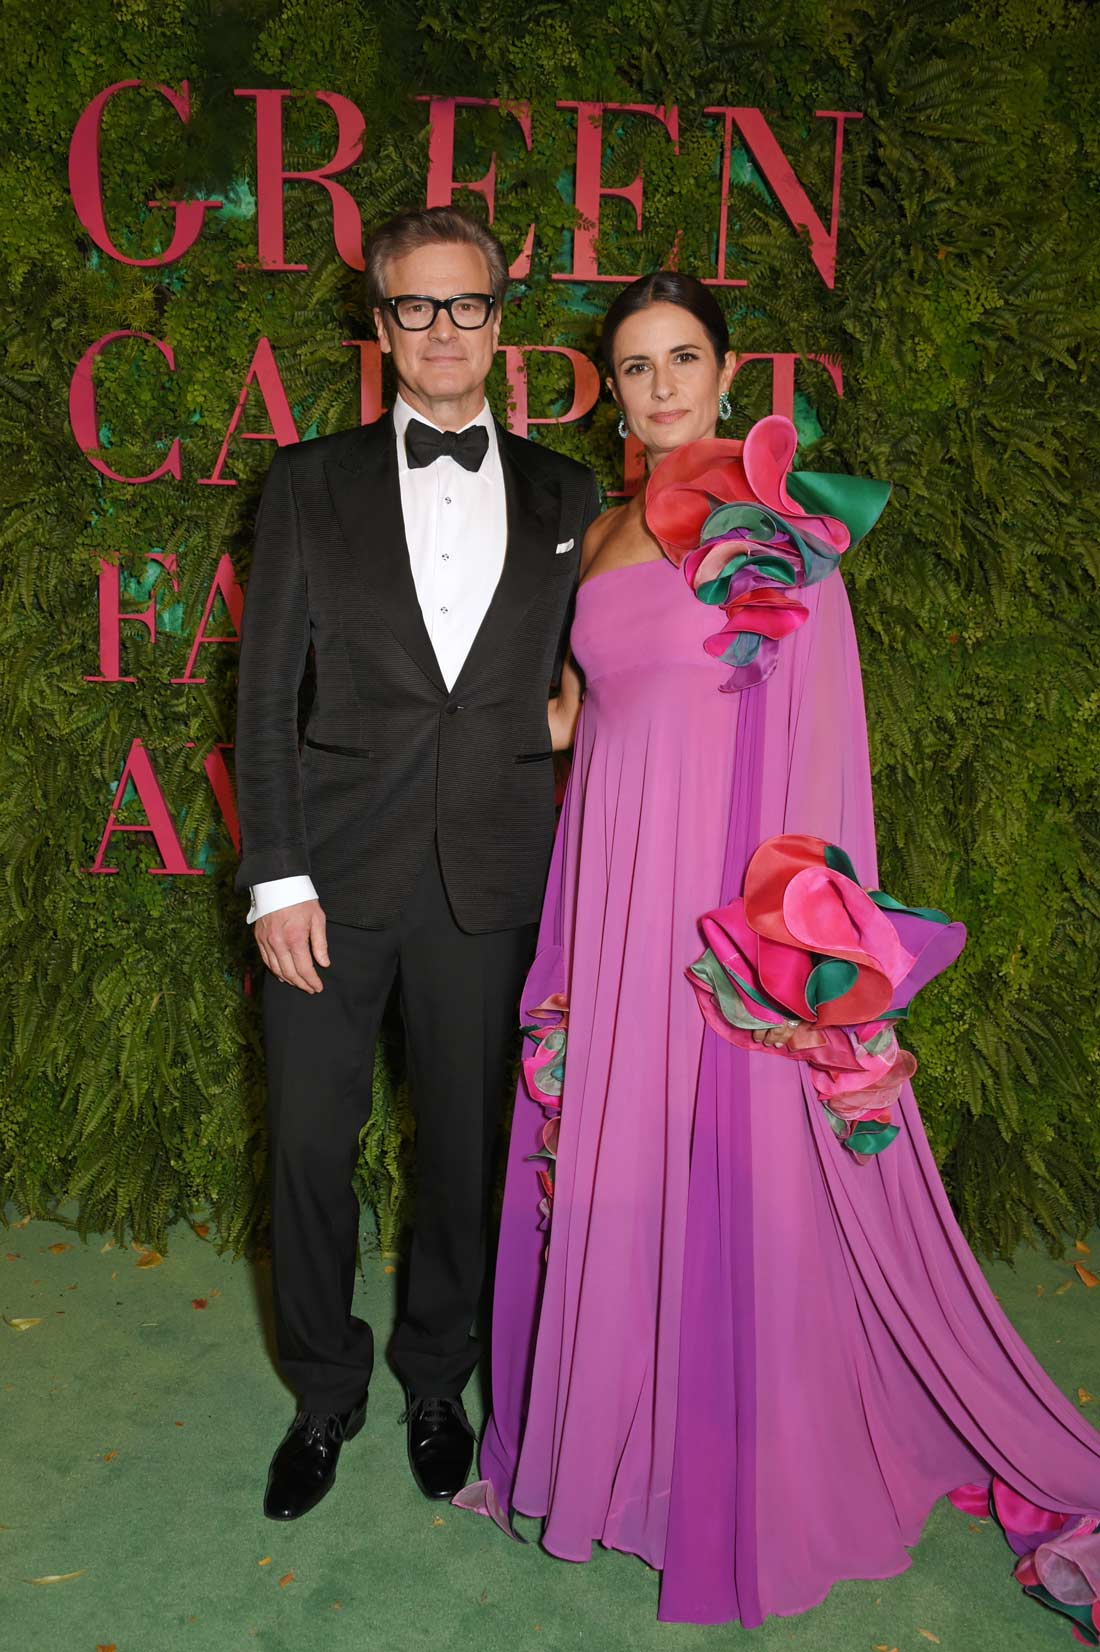 Green Carpet Fashion Awards Milano 2017 - Colin & Livia Firth - Hair & Makeup Massimo Serini